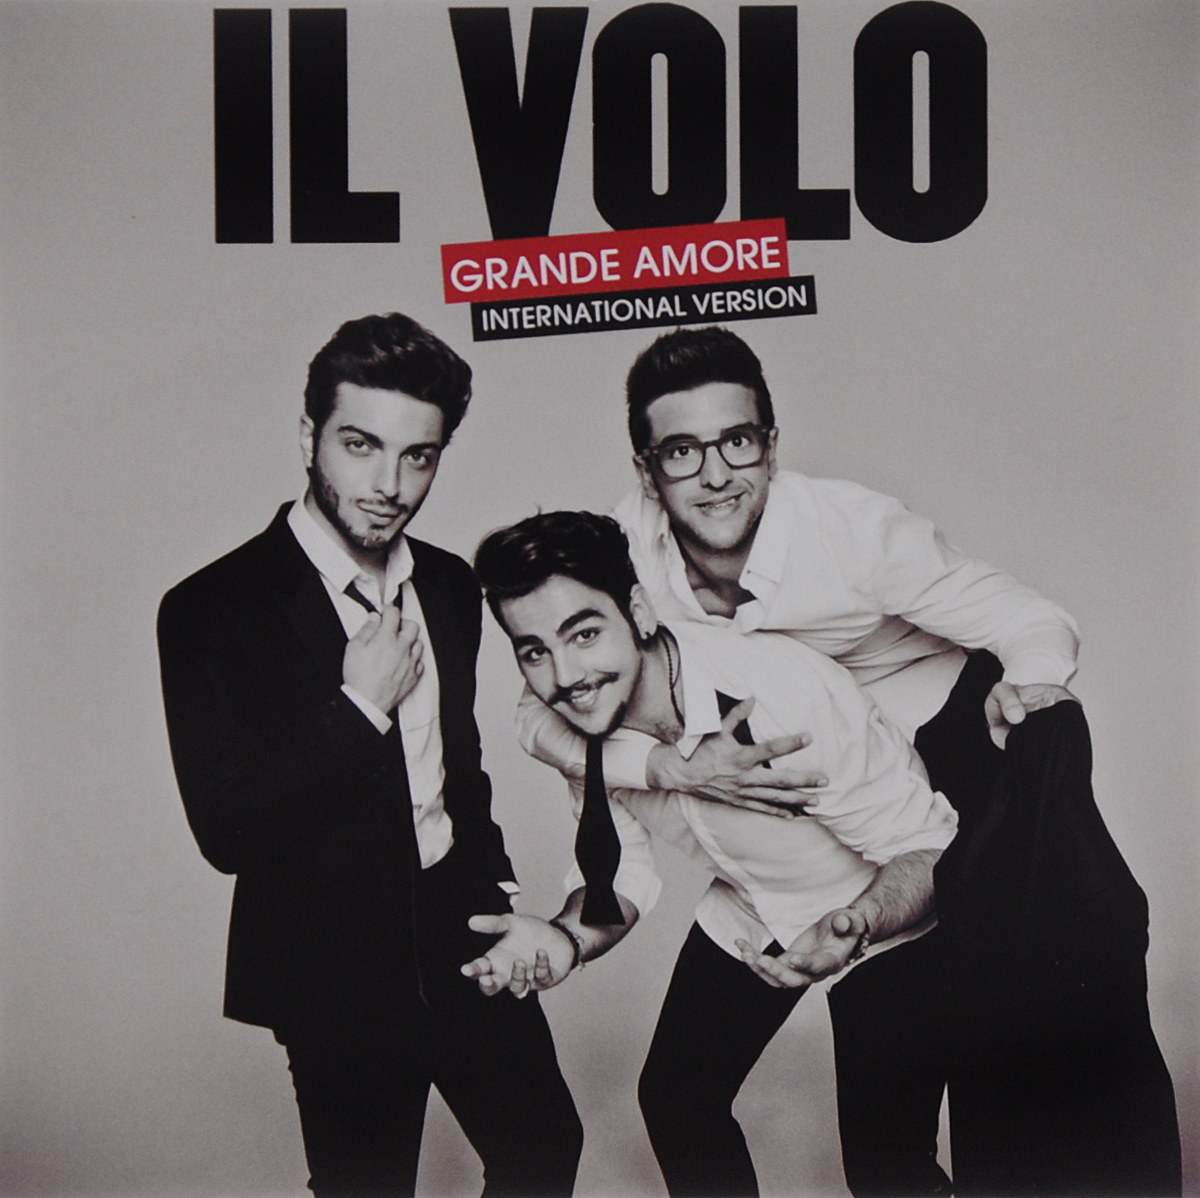 Il Volo Il Volo. Grande Amore. International Version fundamentals of physics extended 9th edition international student version with wileyplus set